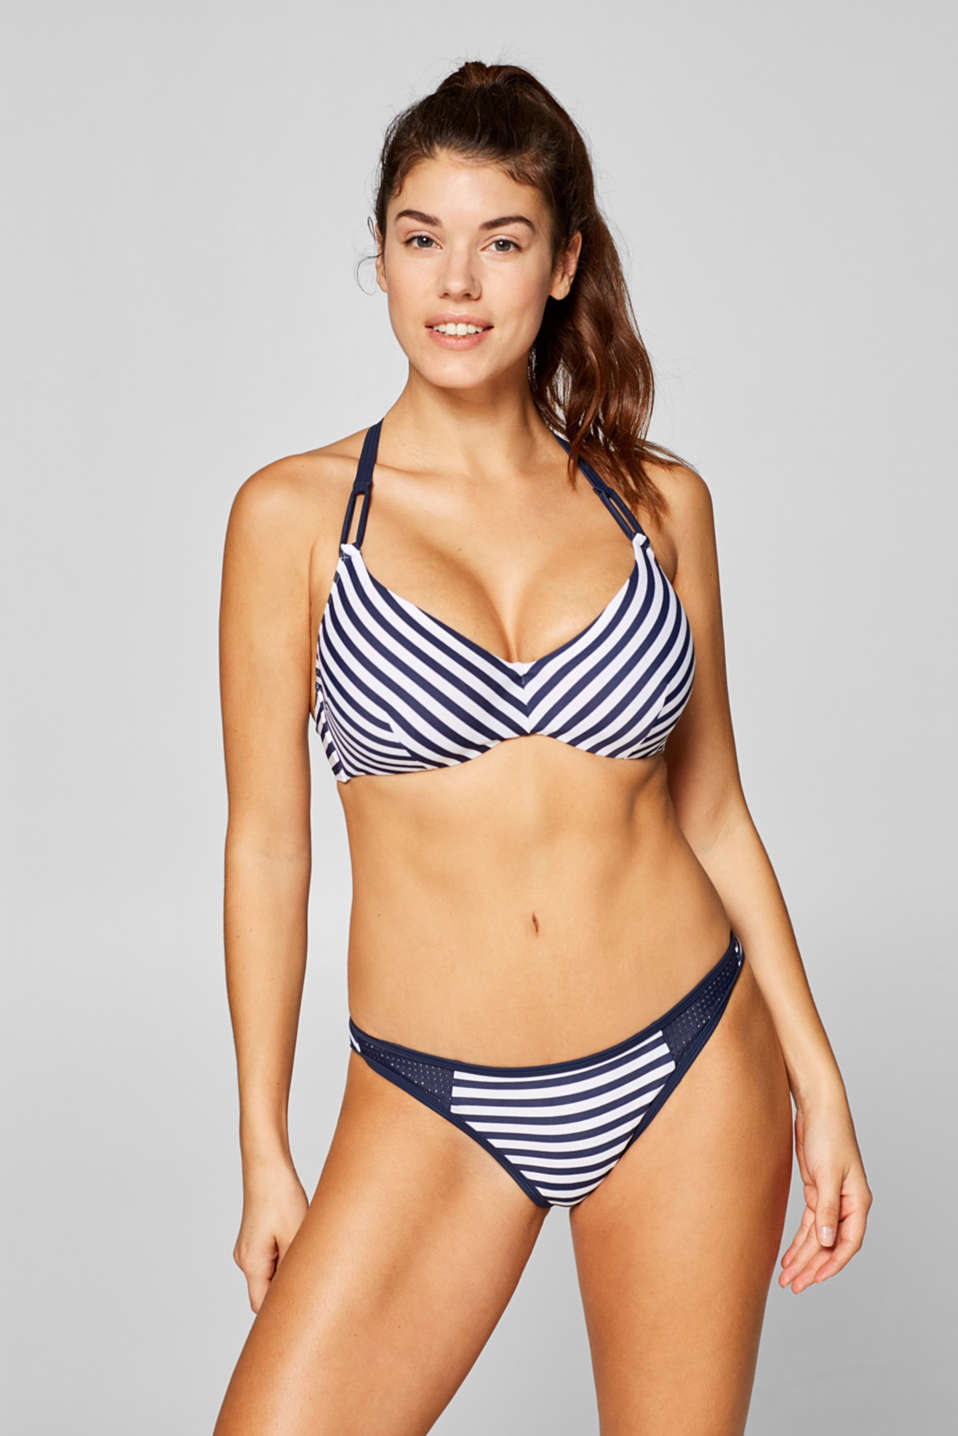 Esprit - Briefs with stripes and an openwork pattern